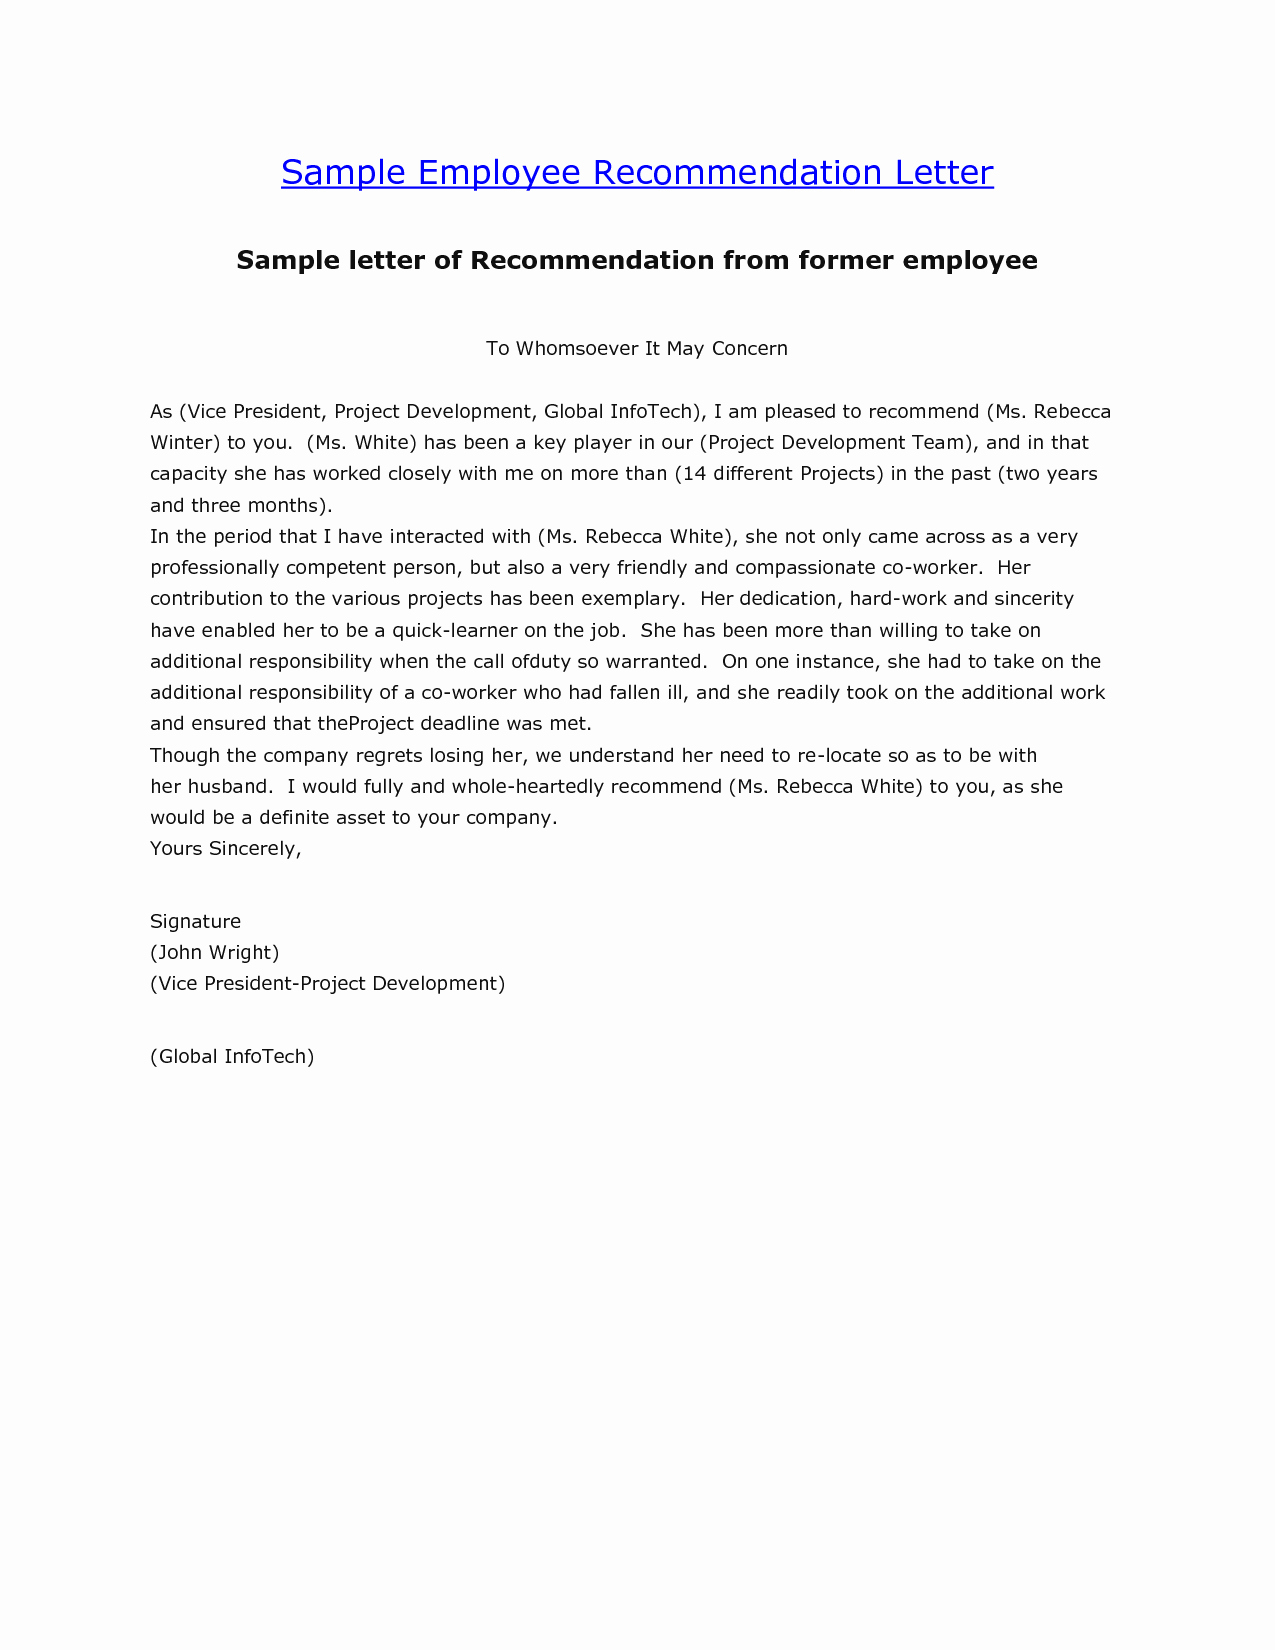 Sample Employment Letters Of Recommendation Inspirational Letter Re Mendation Sample Employment